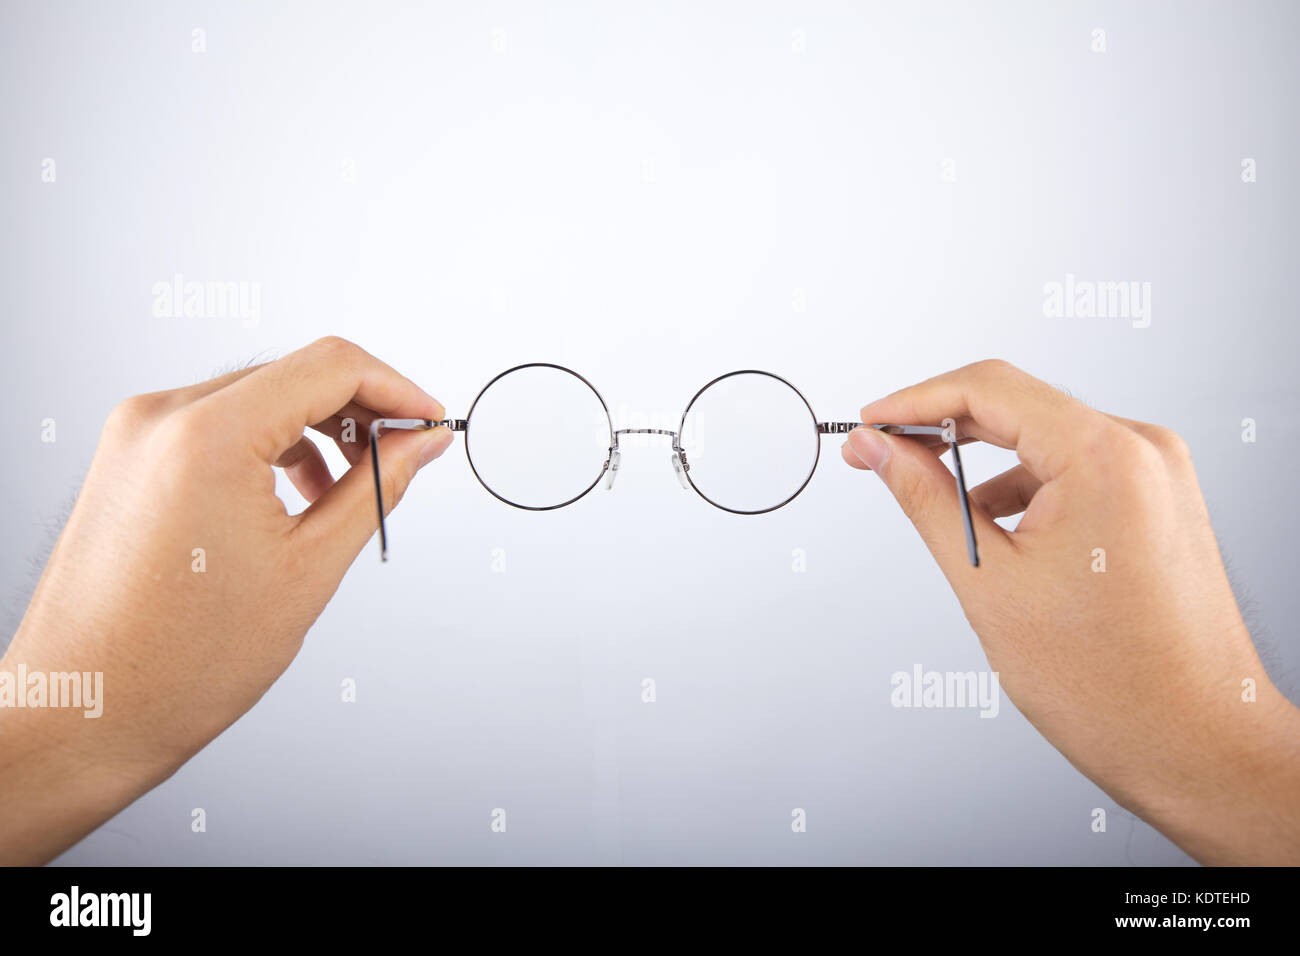 d93a92780cfb1 hand holding circle glasses Stock Photo  163422153 - Alamy